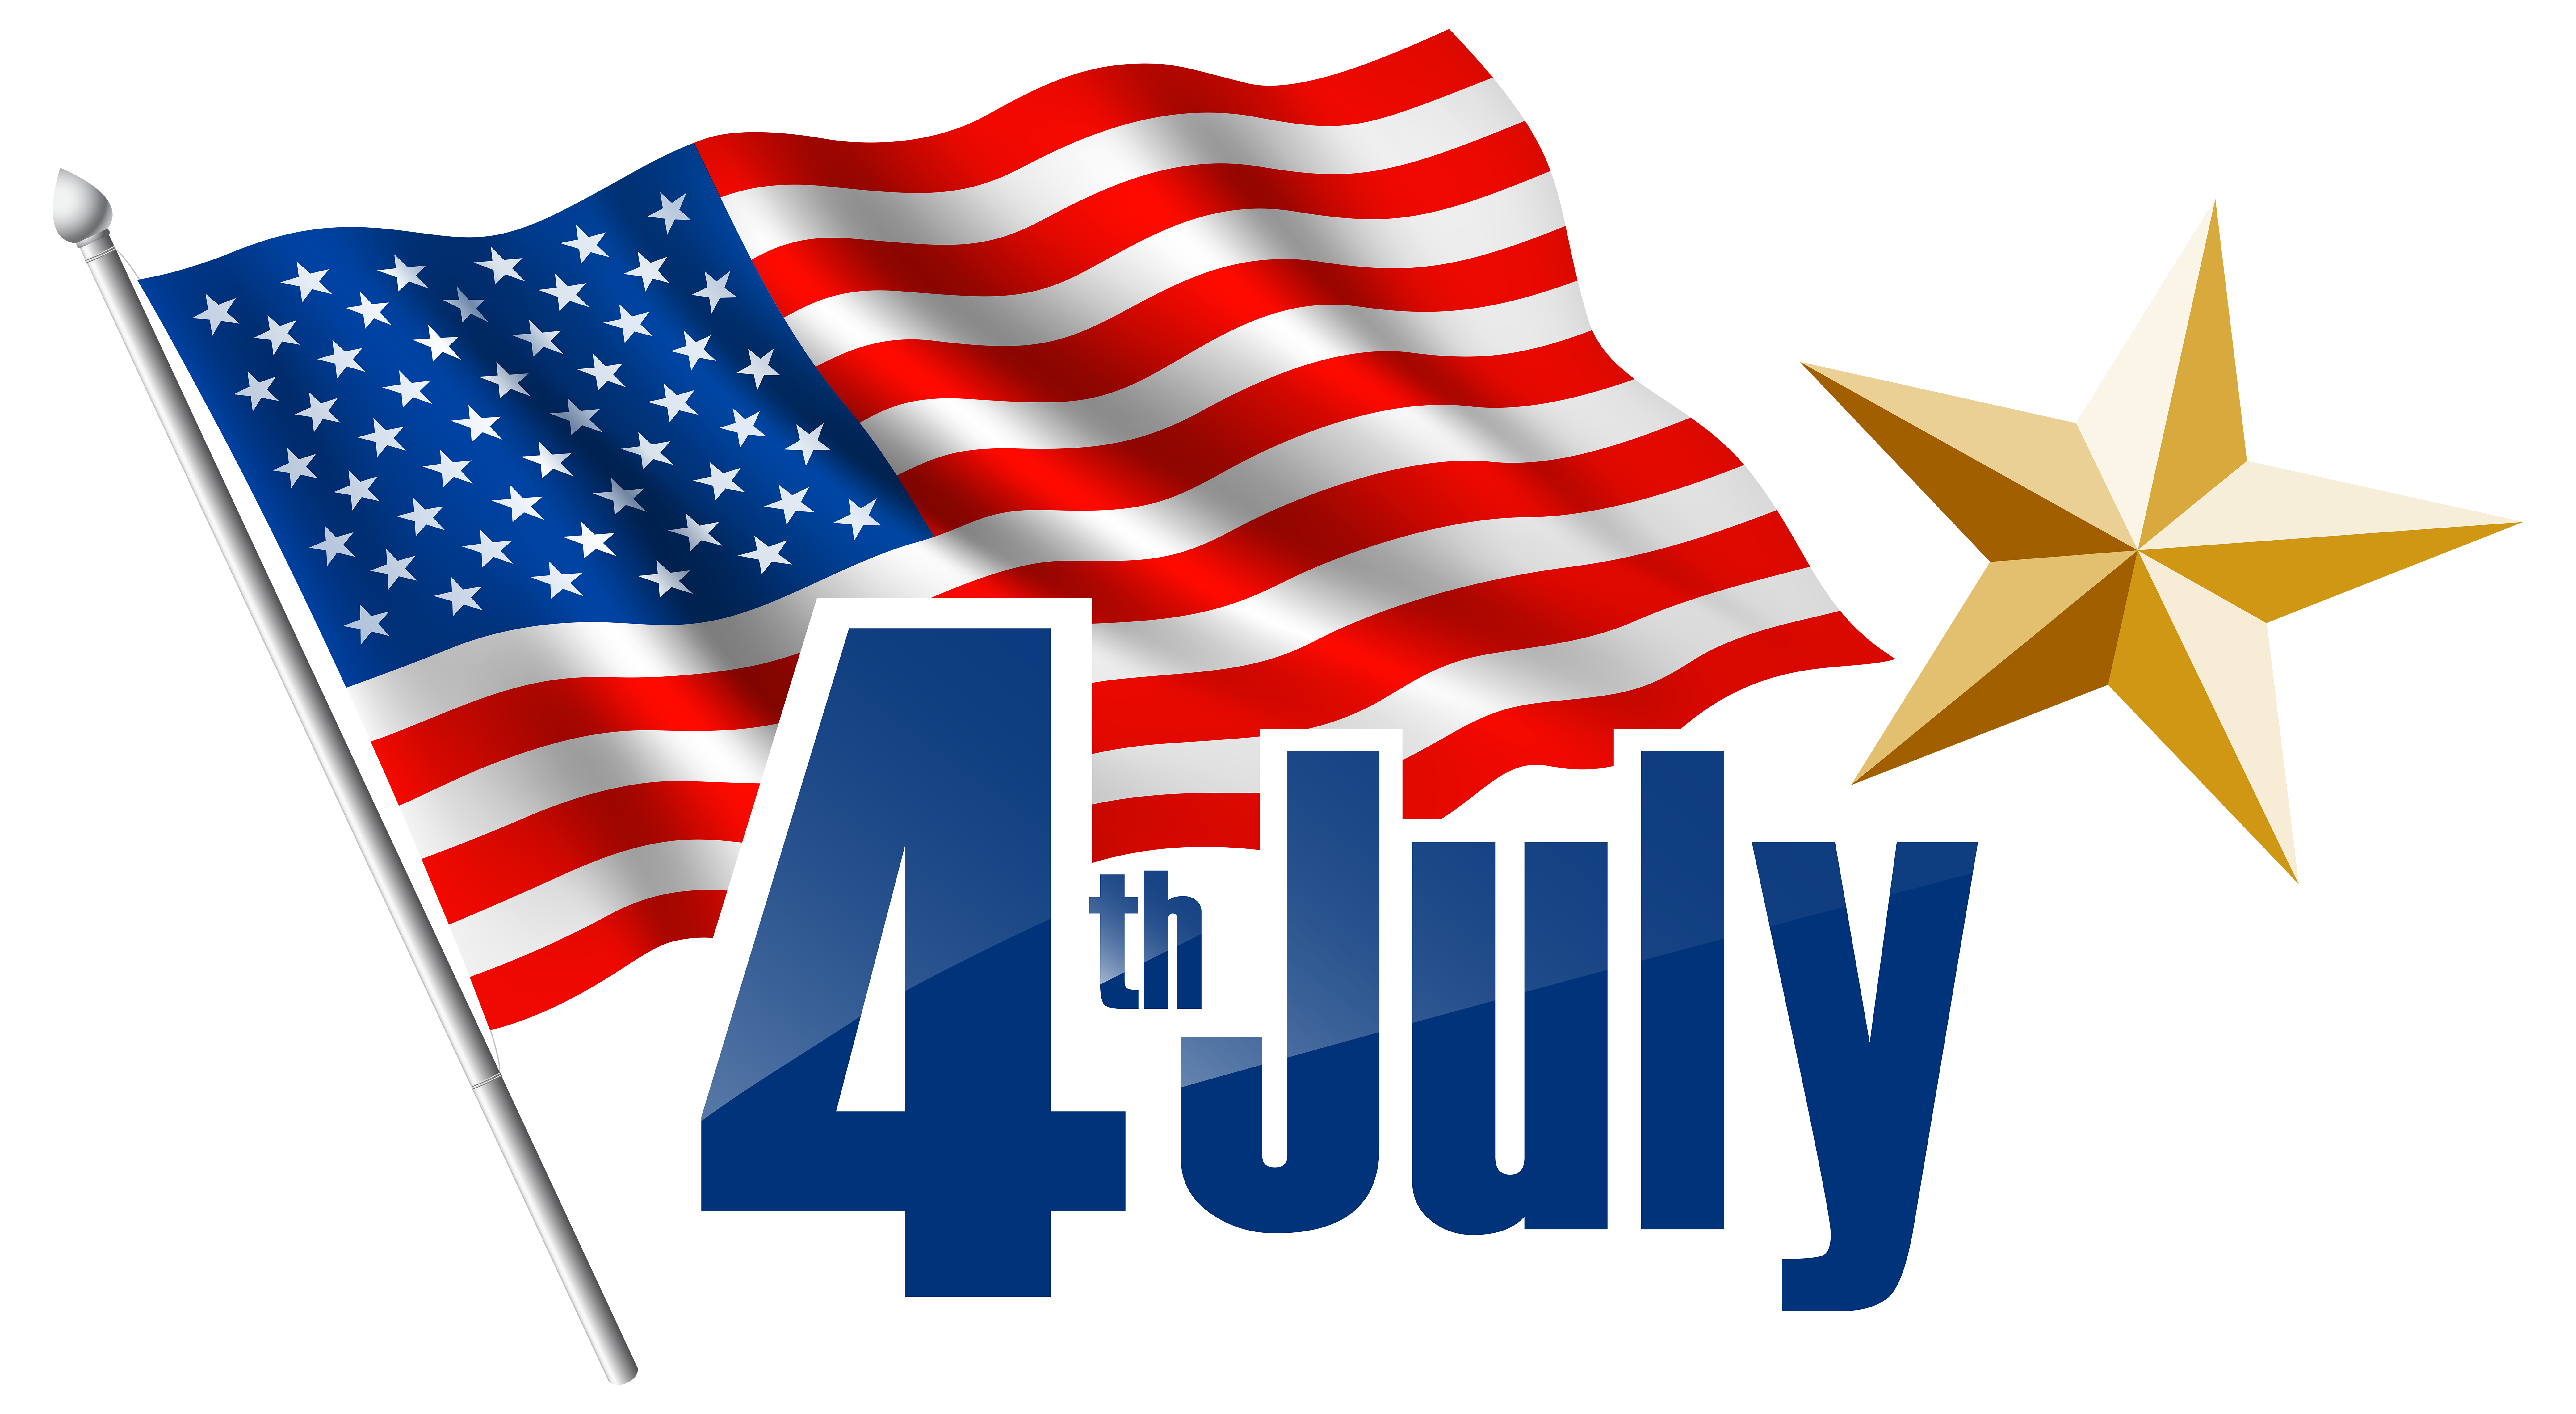 4th of july starwars clipart clipart images gallery for free.